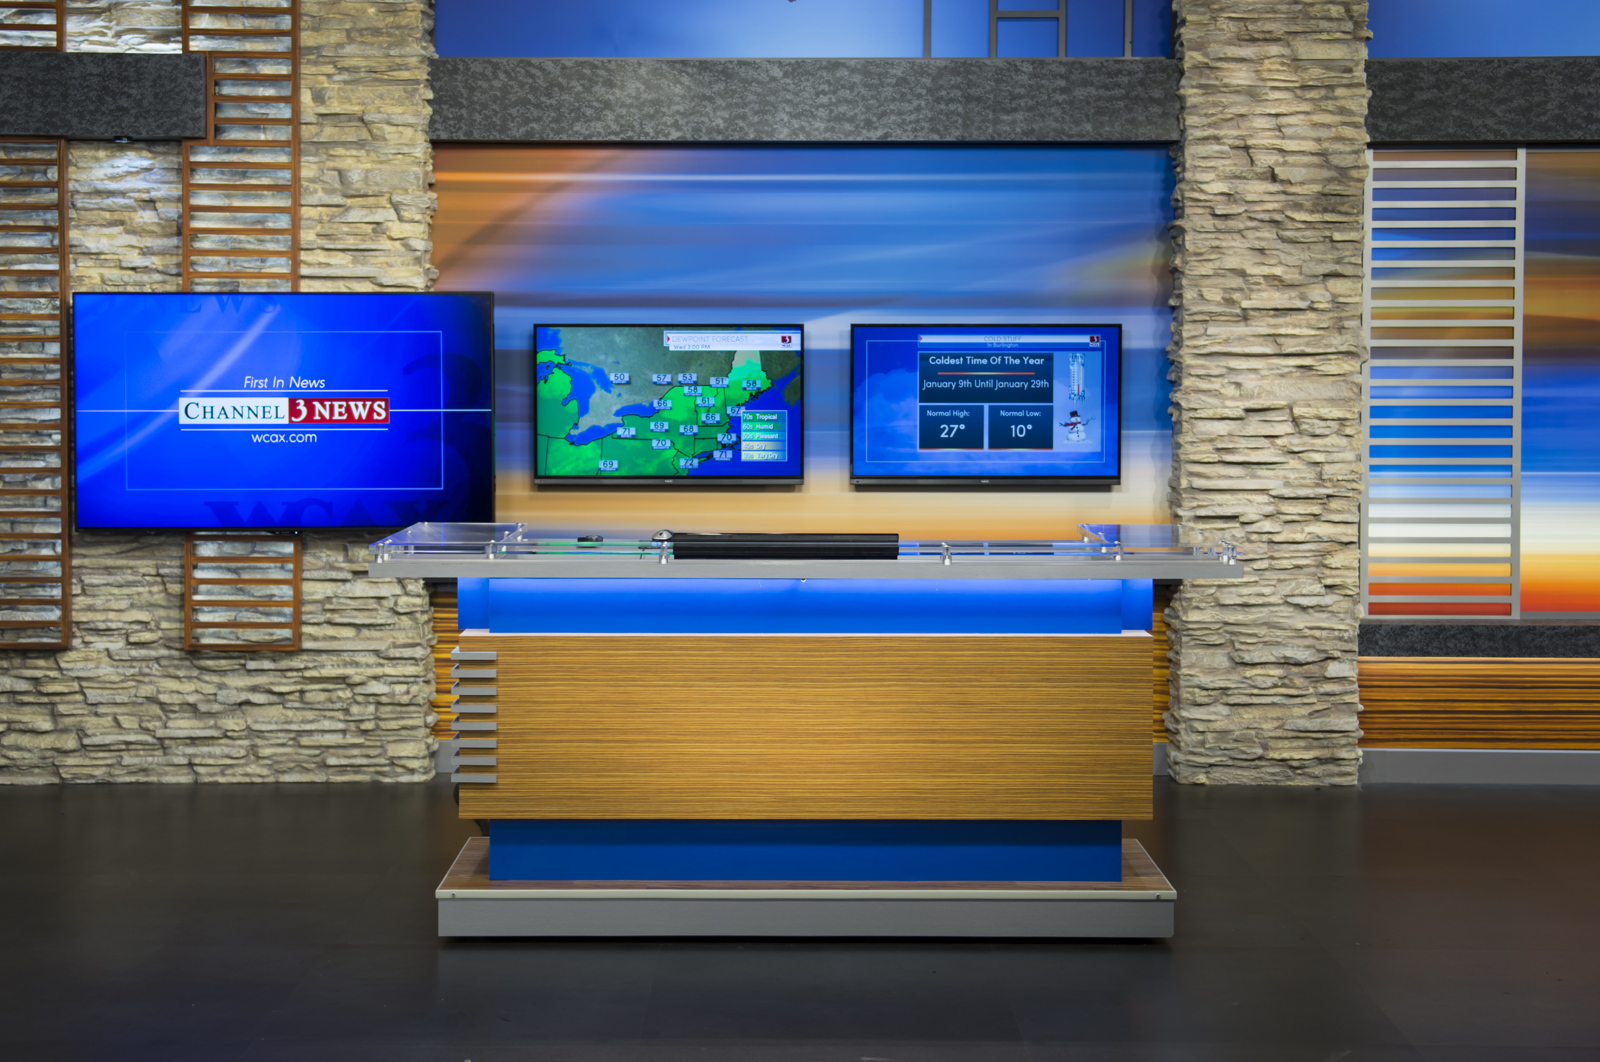 ncs_wcax-channel-3-news-studio_0003